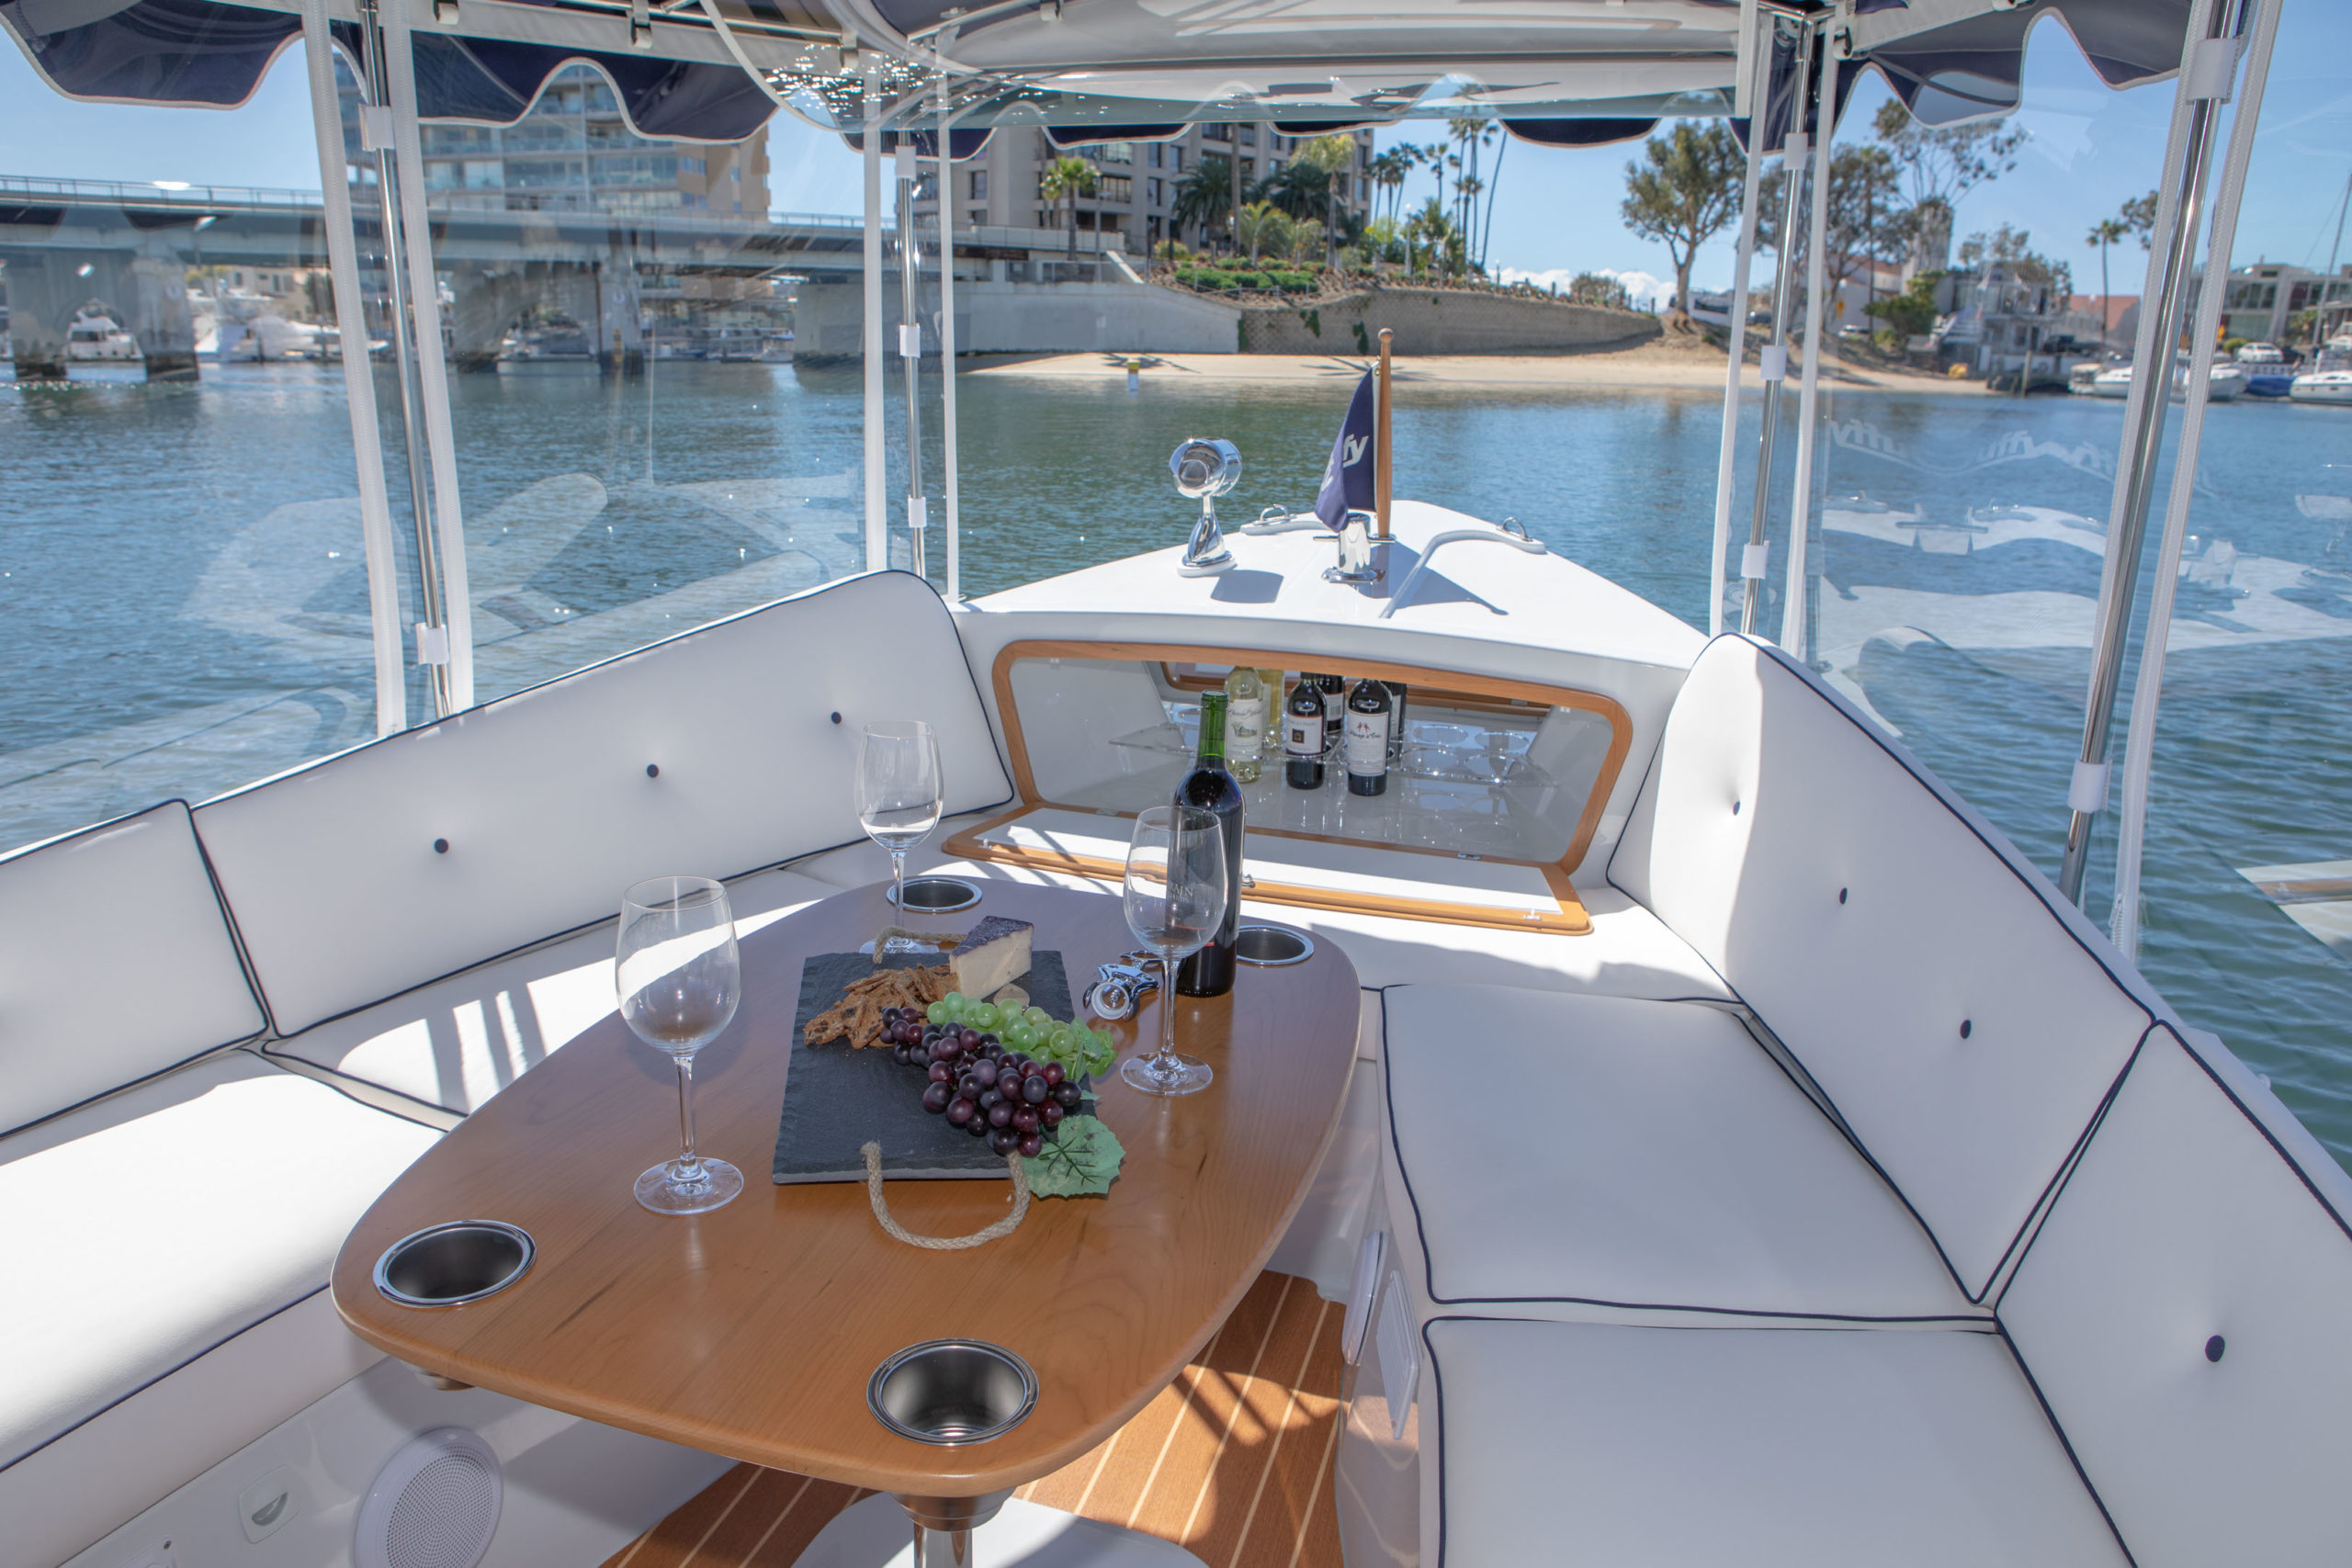 Duffy-Electric-Boats-22-Sun-Cruiser-Interior-2020-9